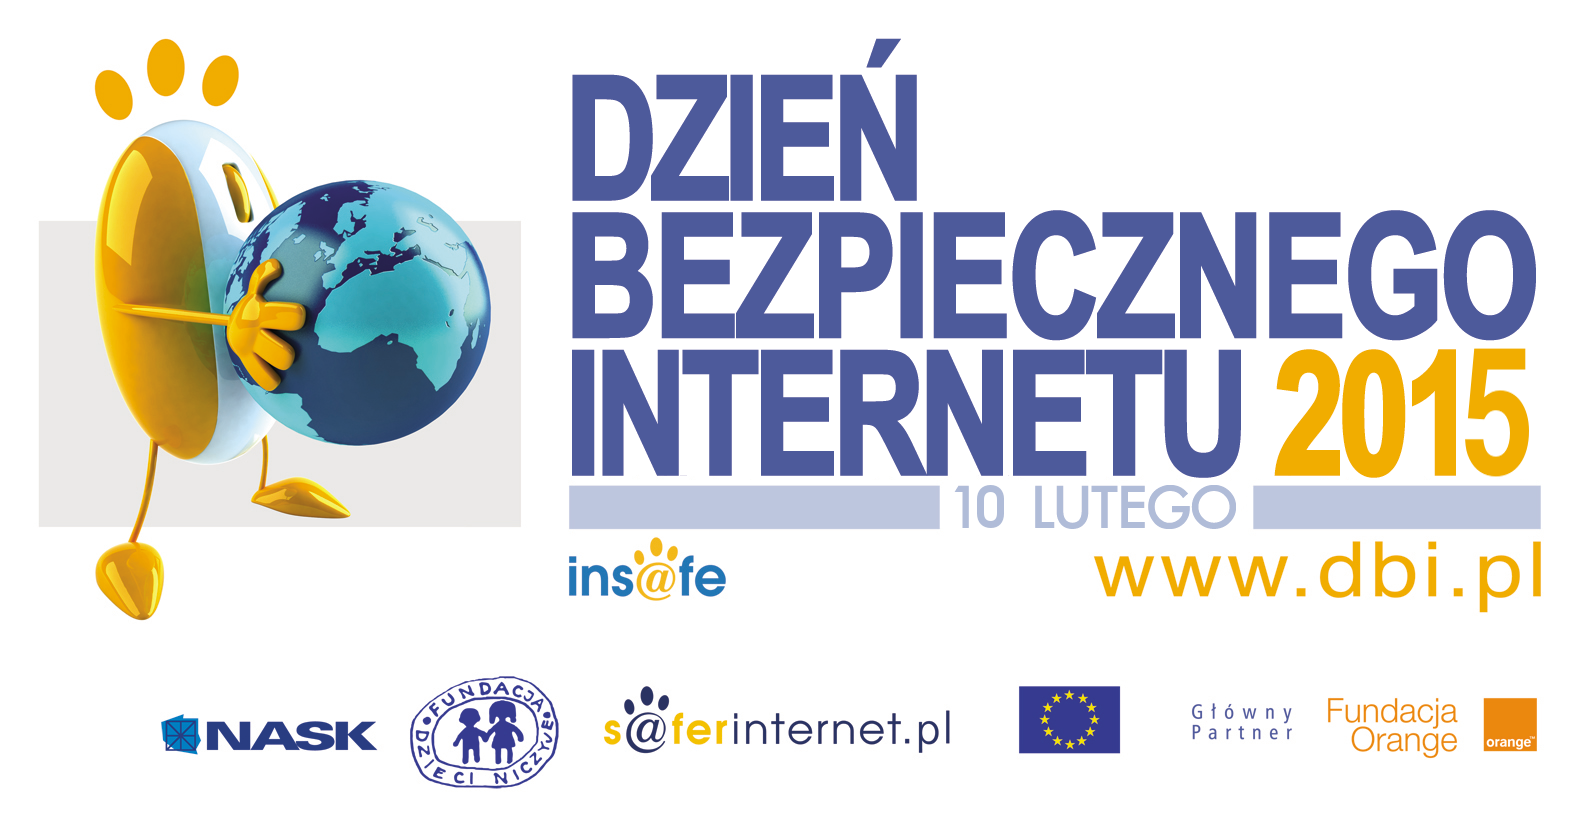 http://www.saferinternet.pl/images/artykuly/dbi/bannery/2015/dbi2015_poziom.png